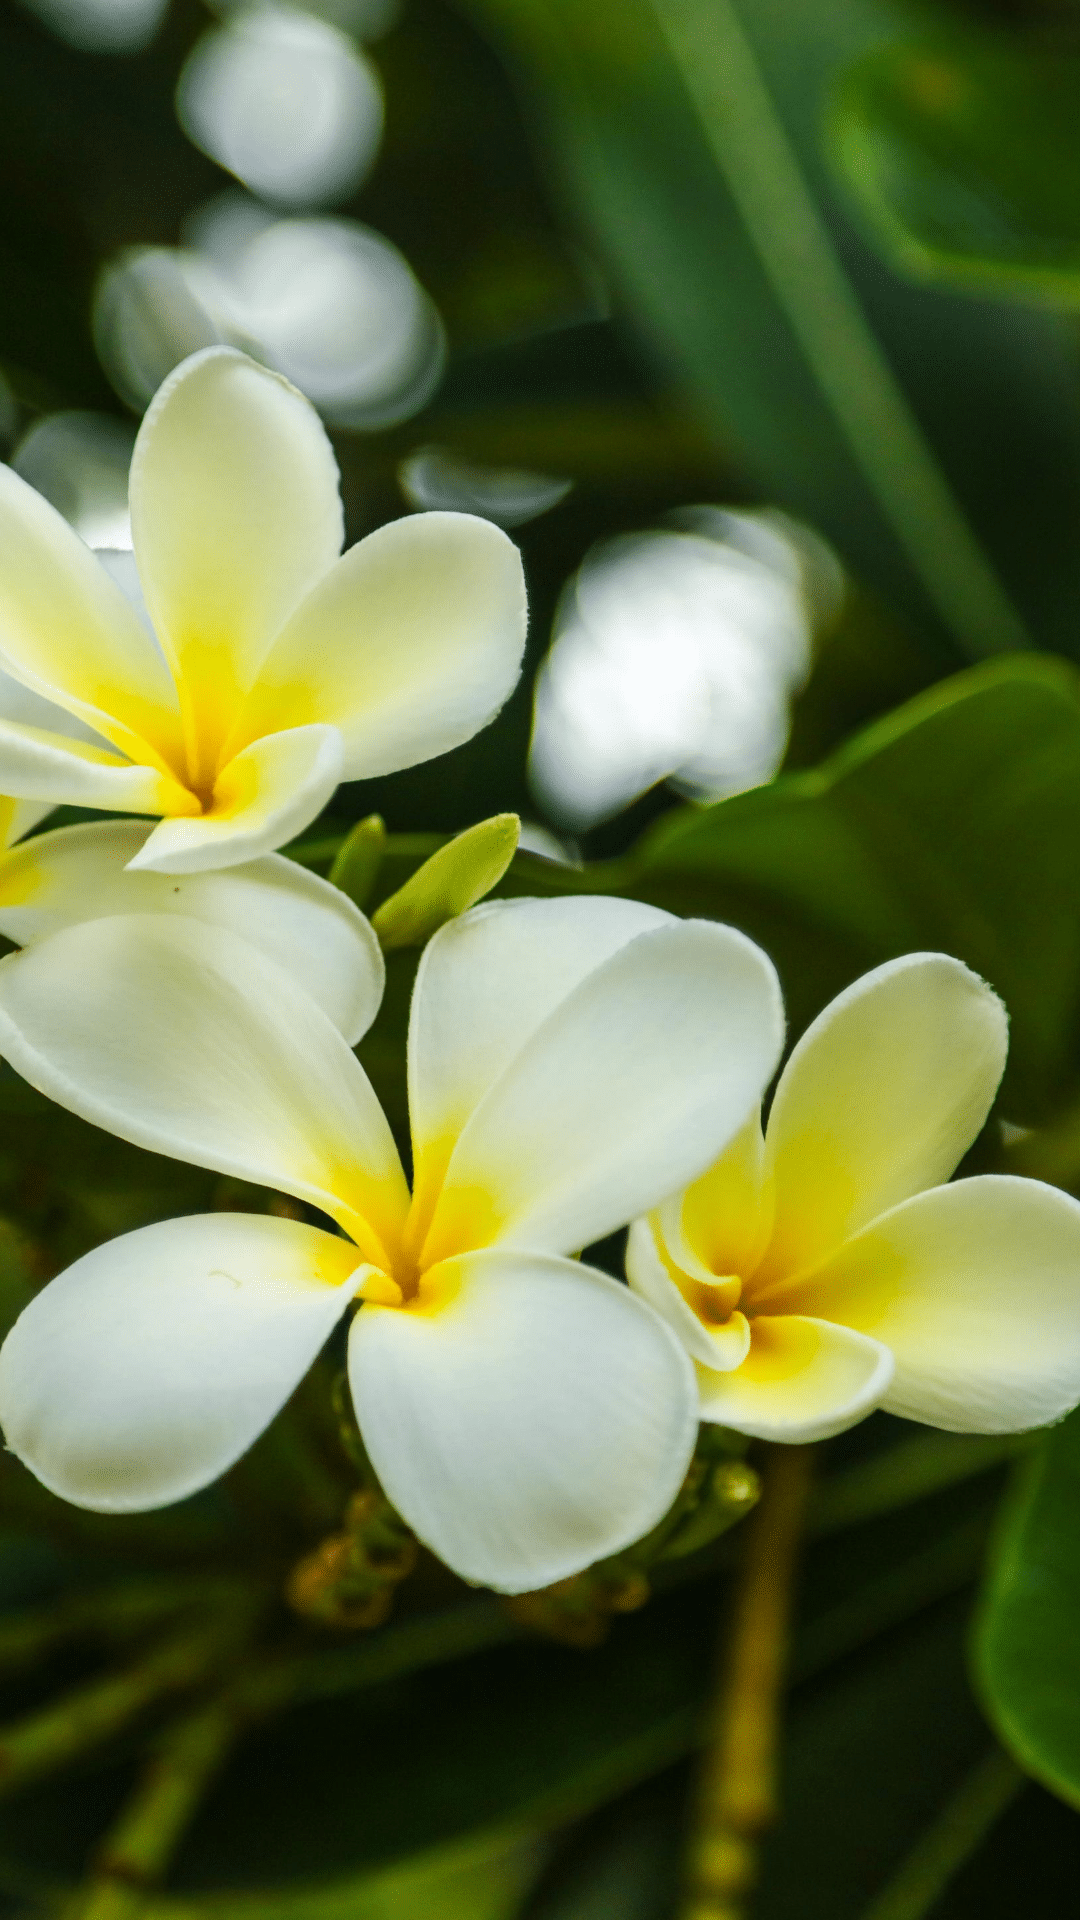 Plumeria flowers are popular for making traditional Hawaiian lei